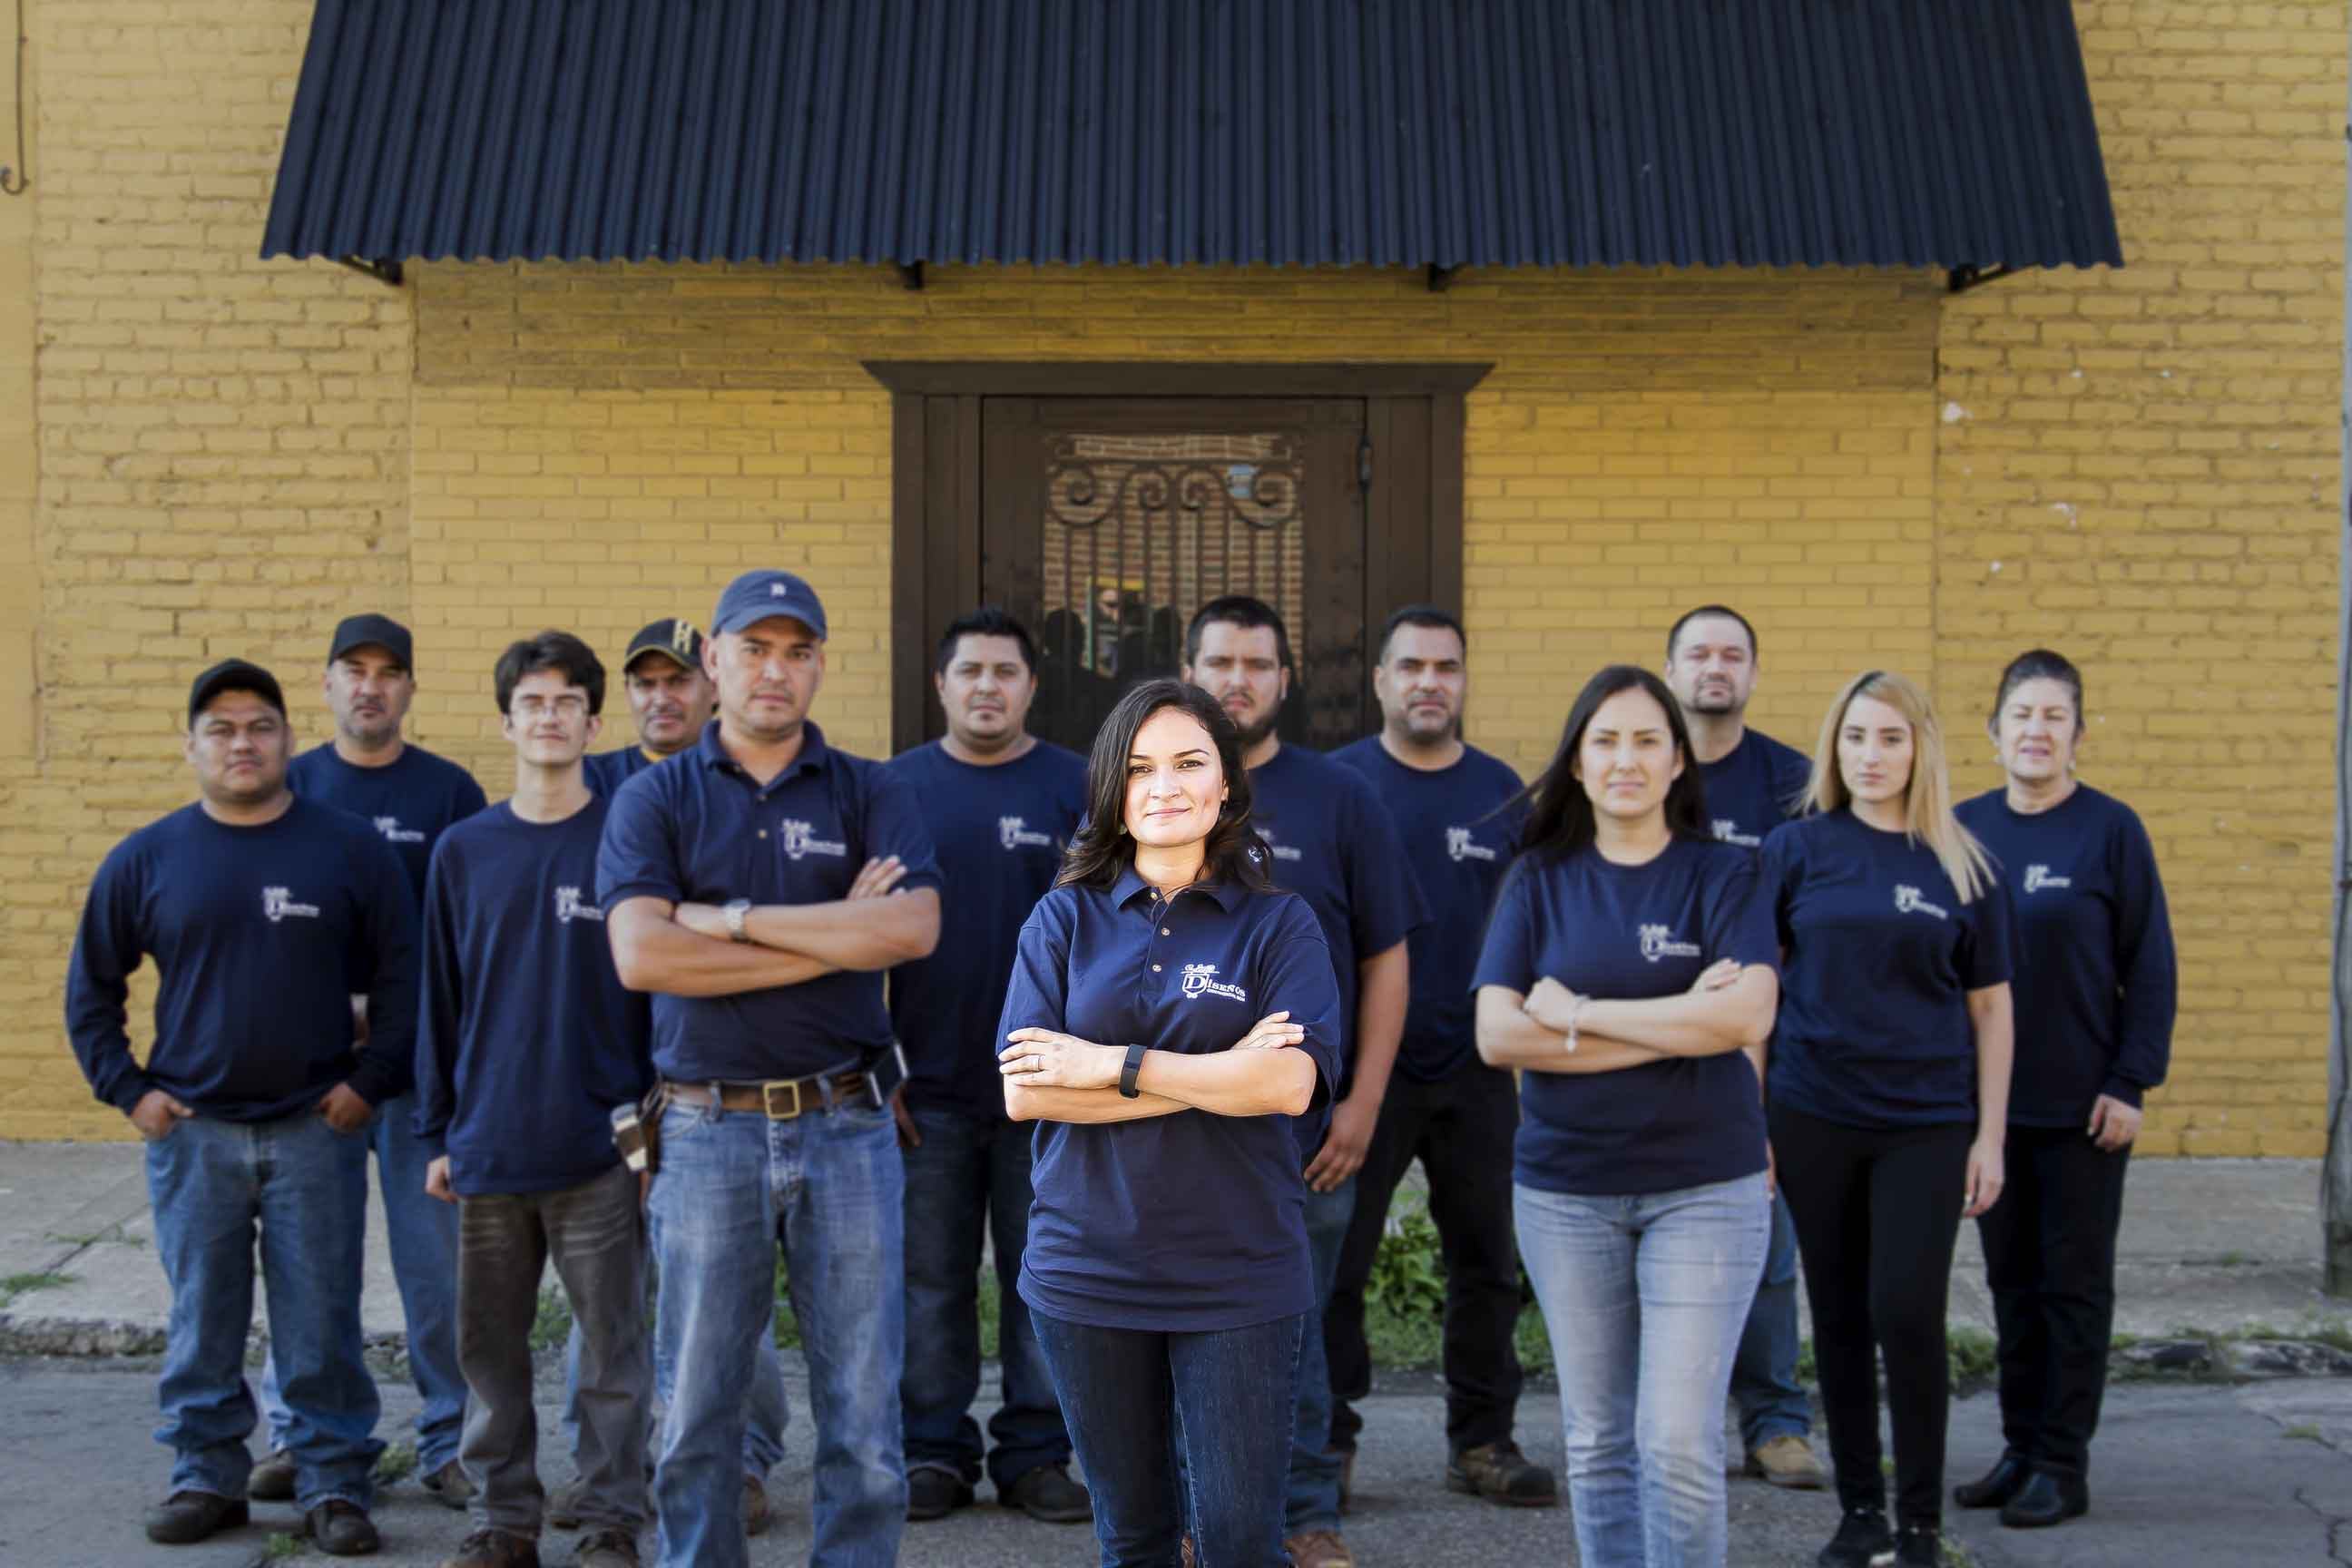 Diseños Ornamental Iron Team